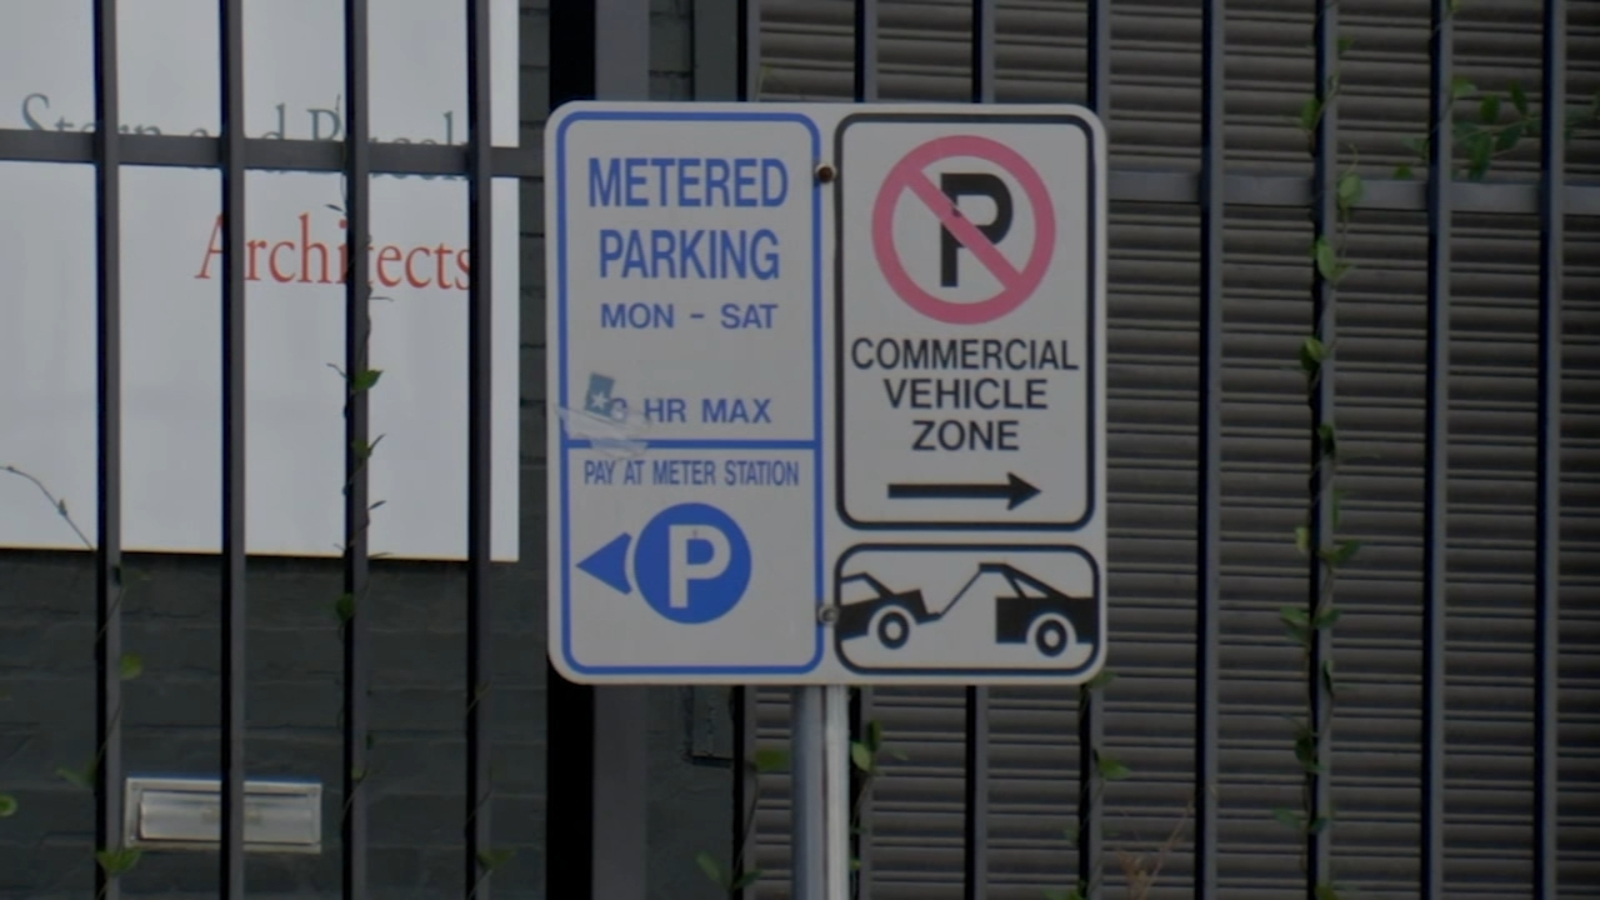 Houston Astros: If you're heading to a playoff game, beware of parking scams not just in lots - KTRK-TV